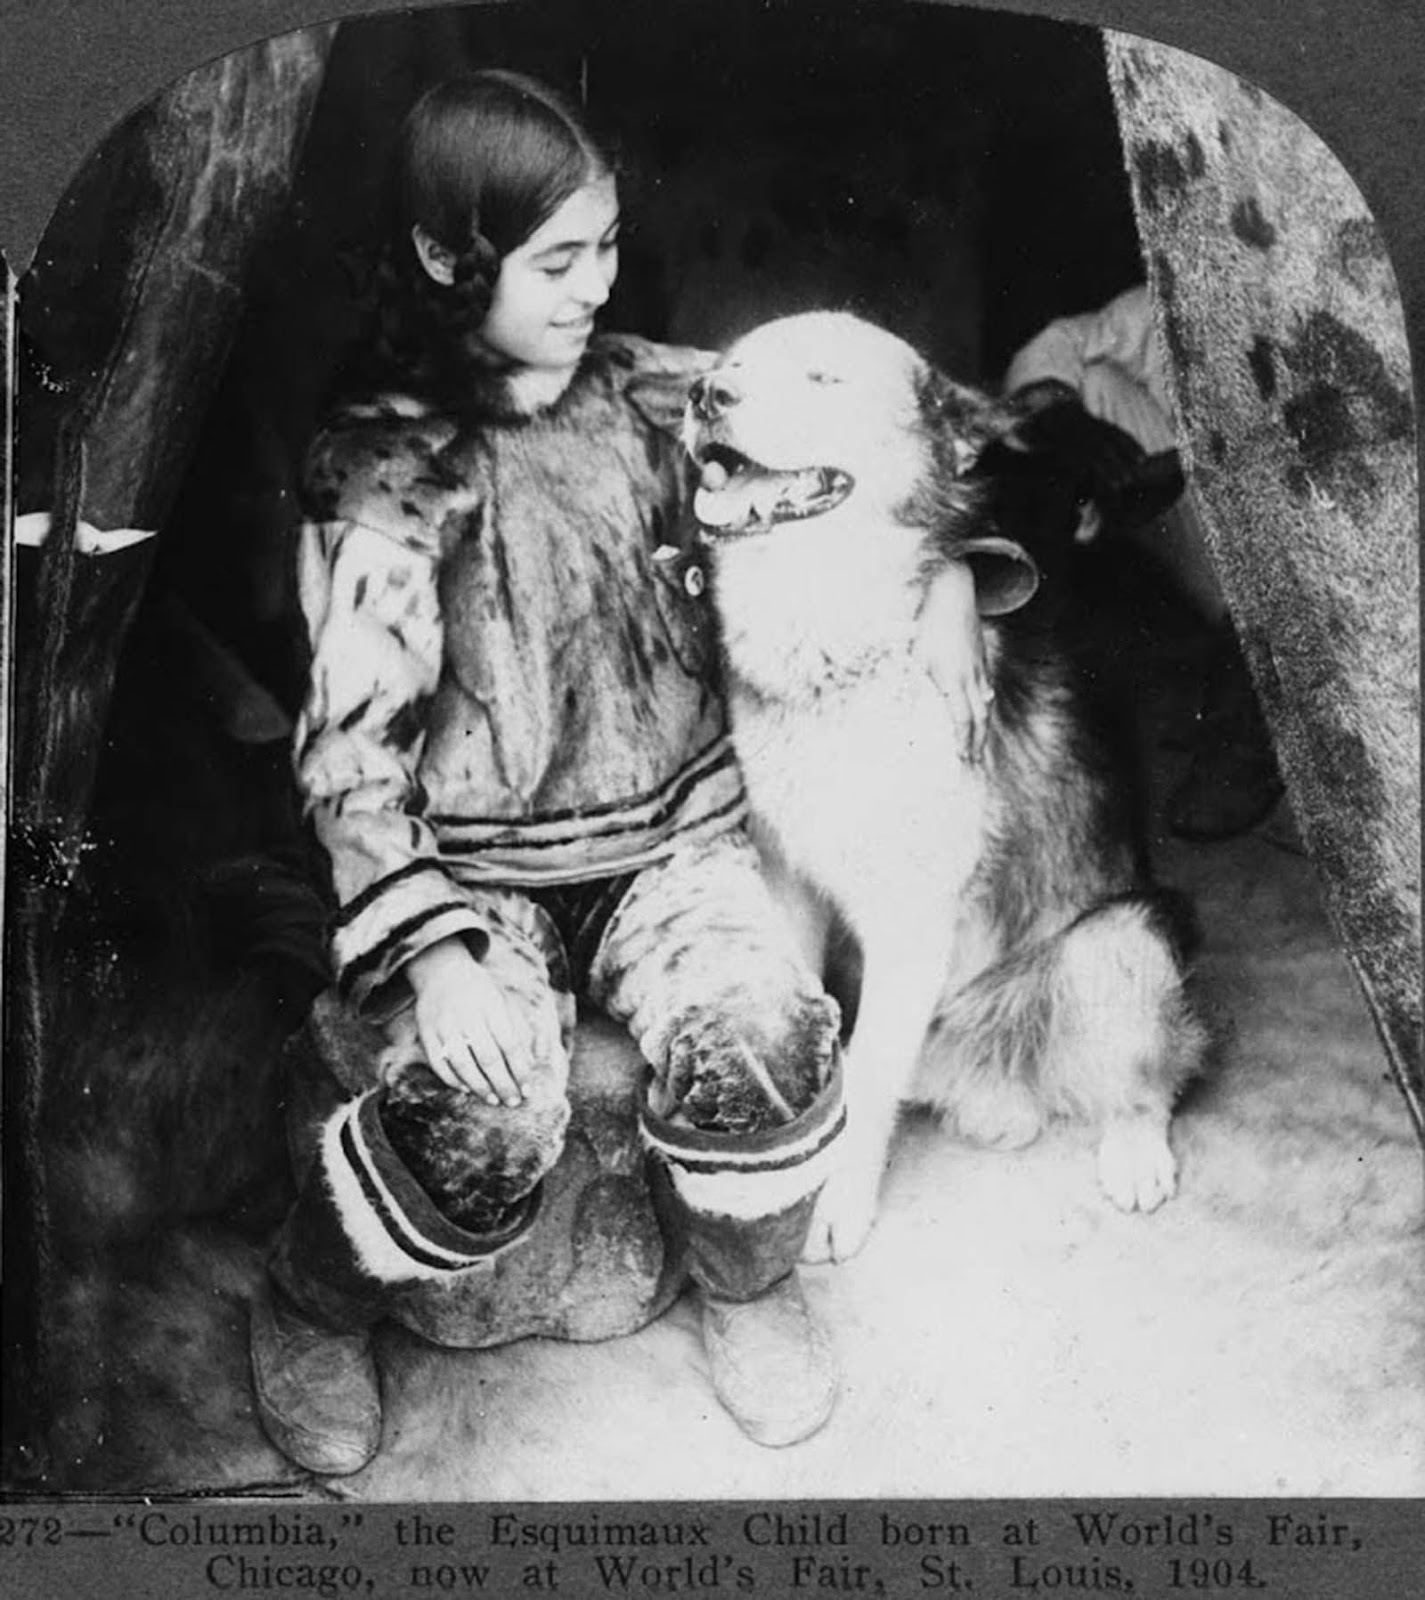 This Eskimo child, pictured with a dog, was born at World's Fair in Chicago and is pictured after being transferred to World's Fair, St. Louis in 1904.